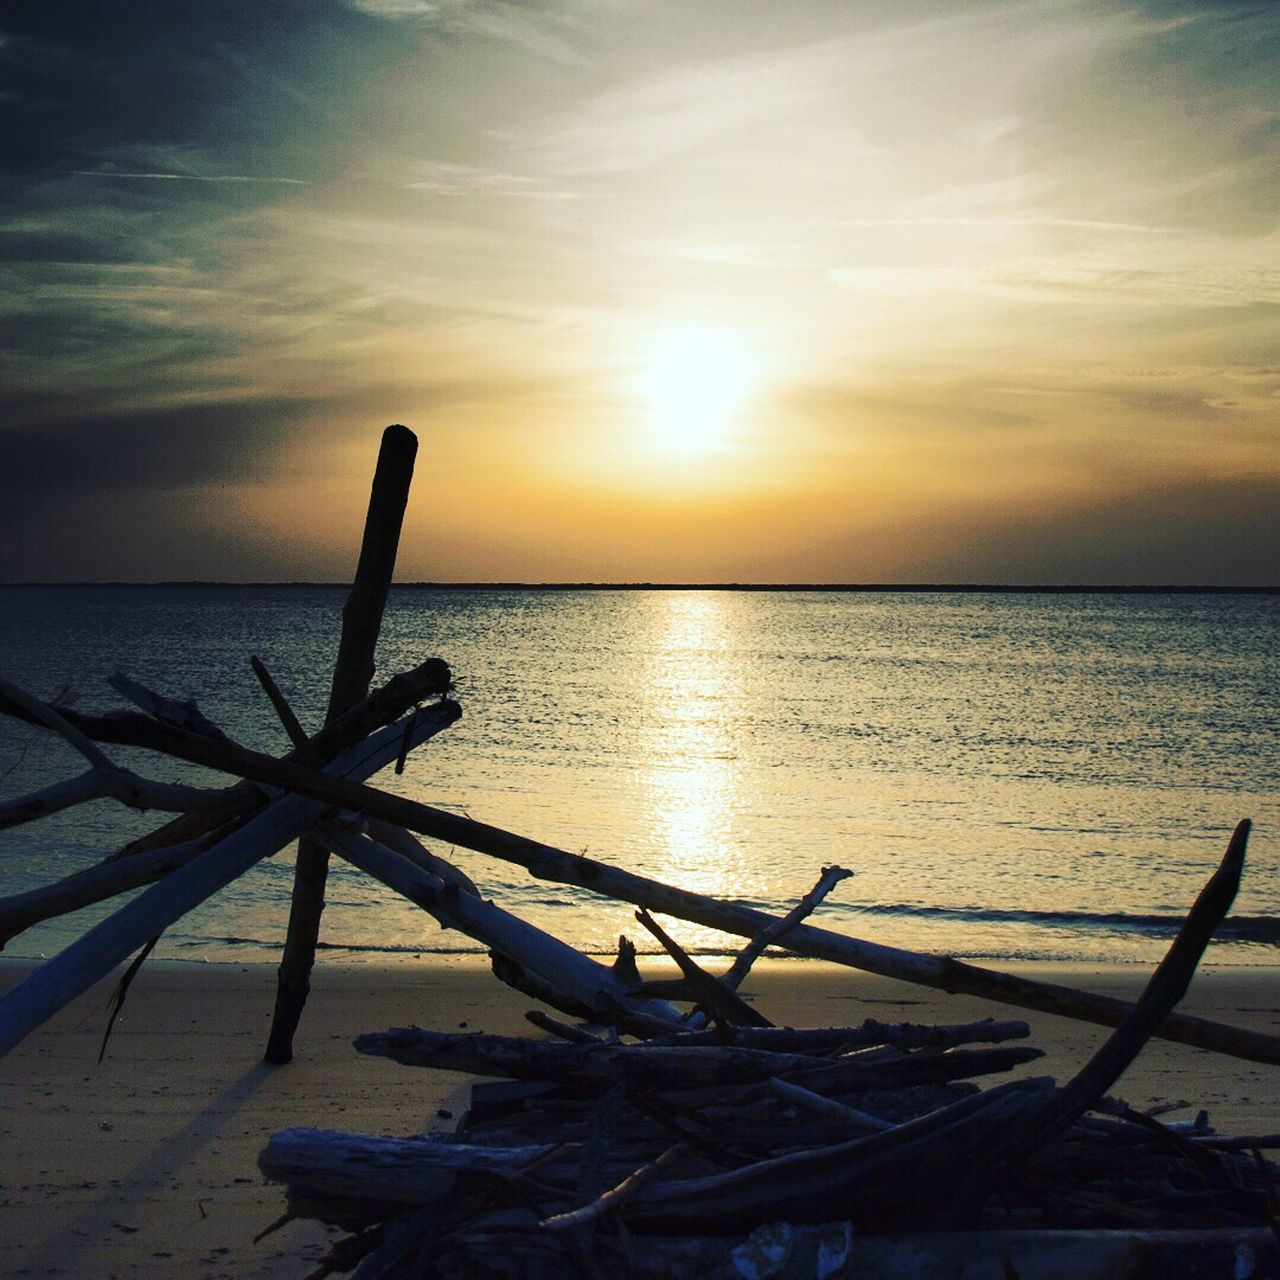 sunset, sea, horizon over water, scenics, beauty in nature, beach, water, sky, tranquility, nature, tranquil scene, no people, sun, cloud - sky, sunlight, outdoors, day